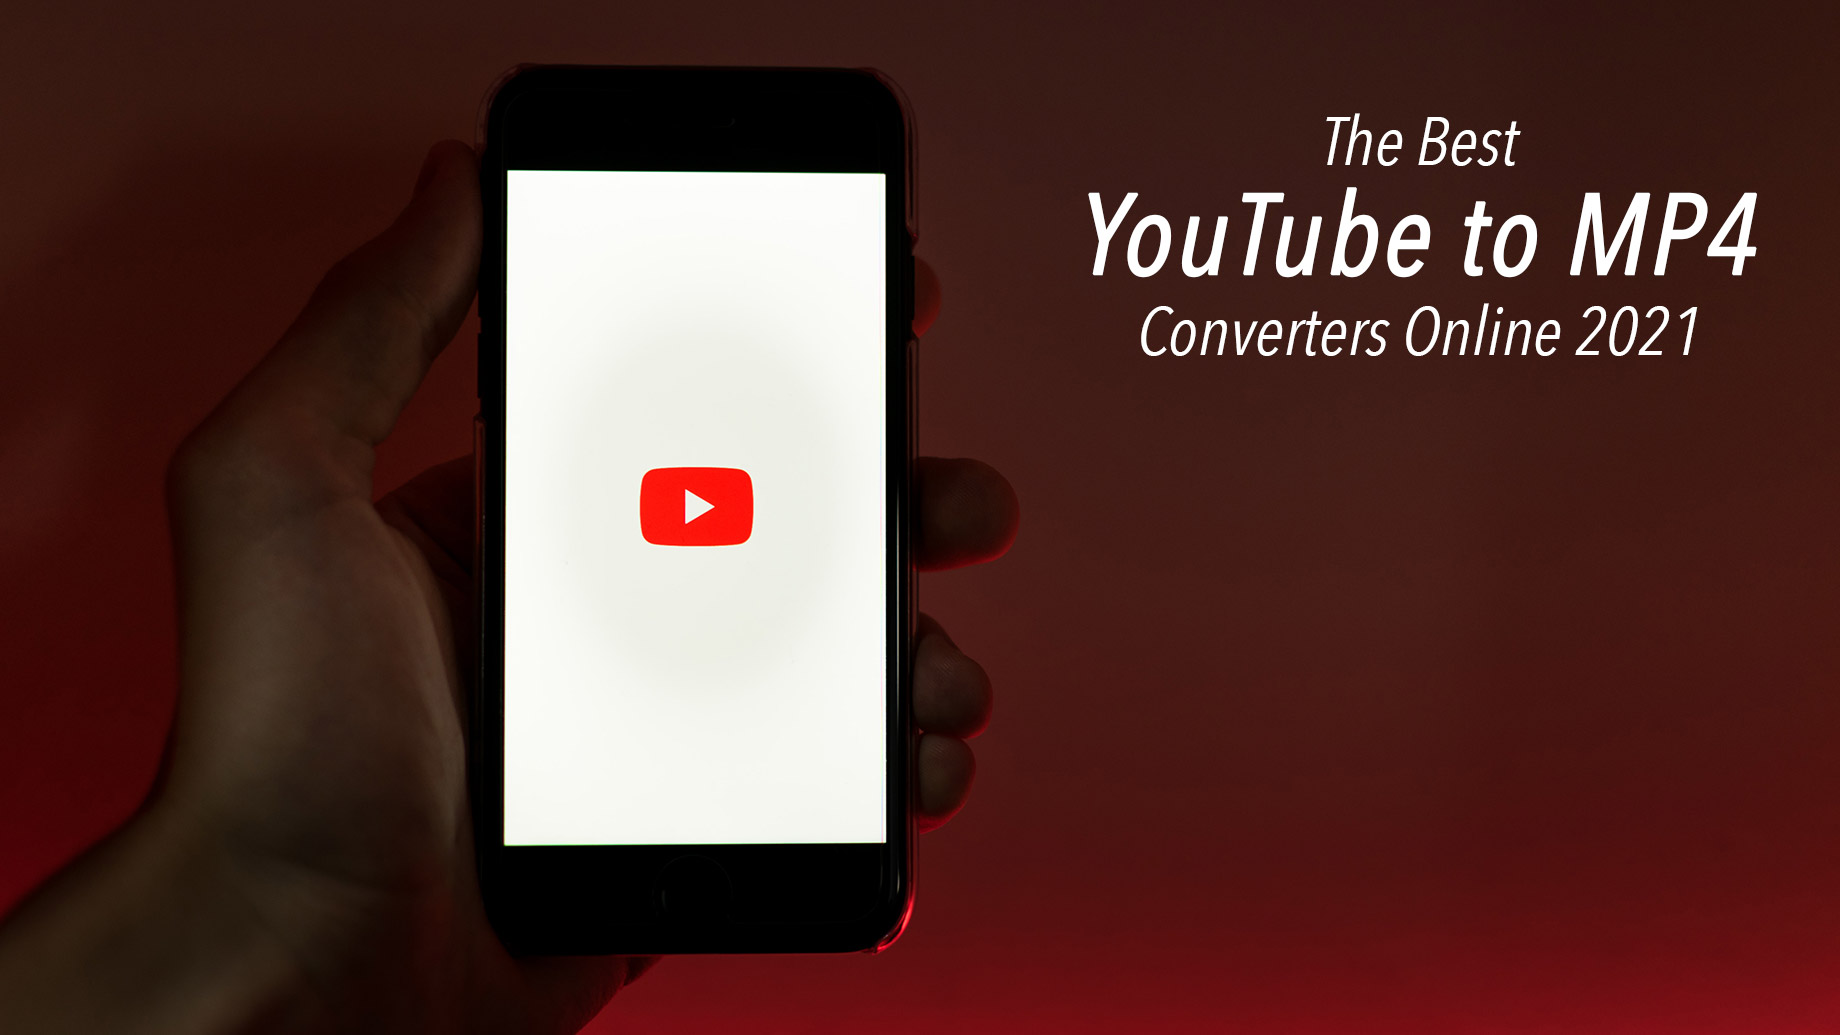 The Best YouTube to MP4 Converters Online 2021